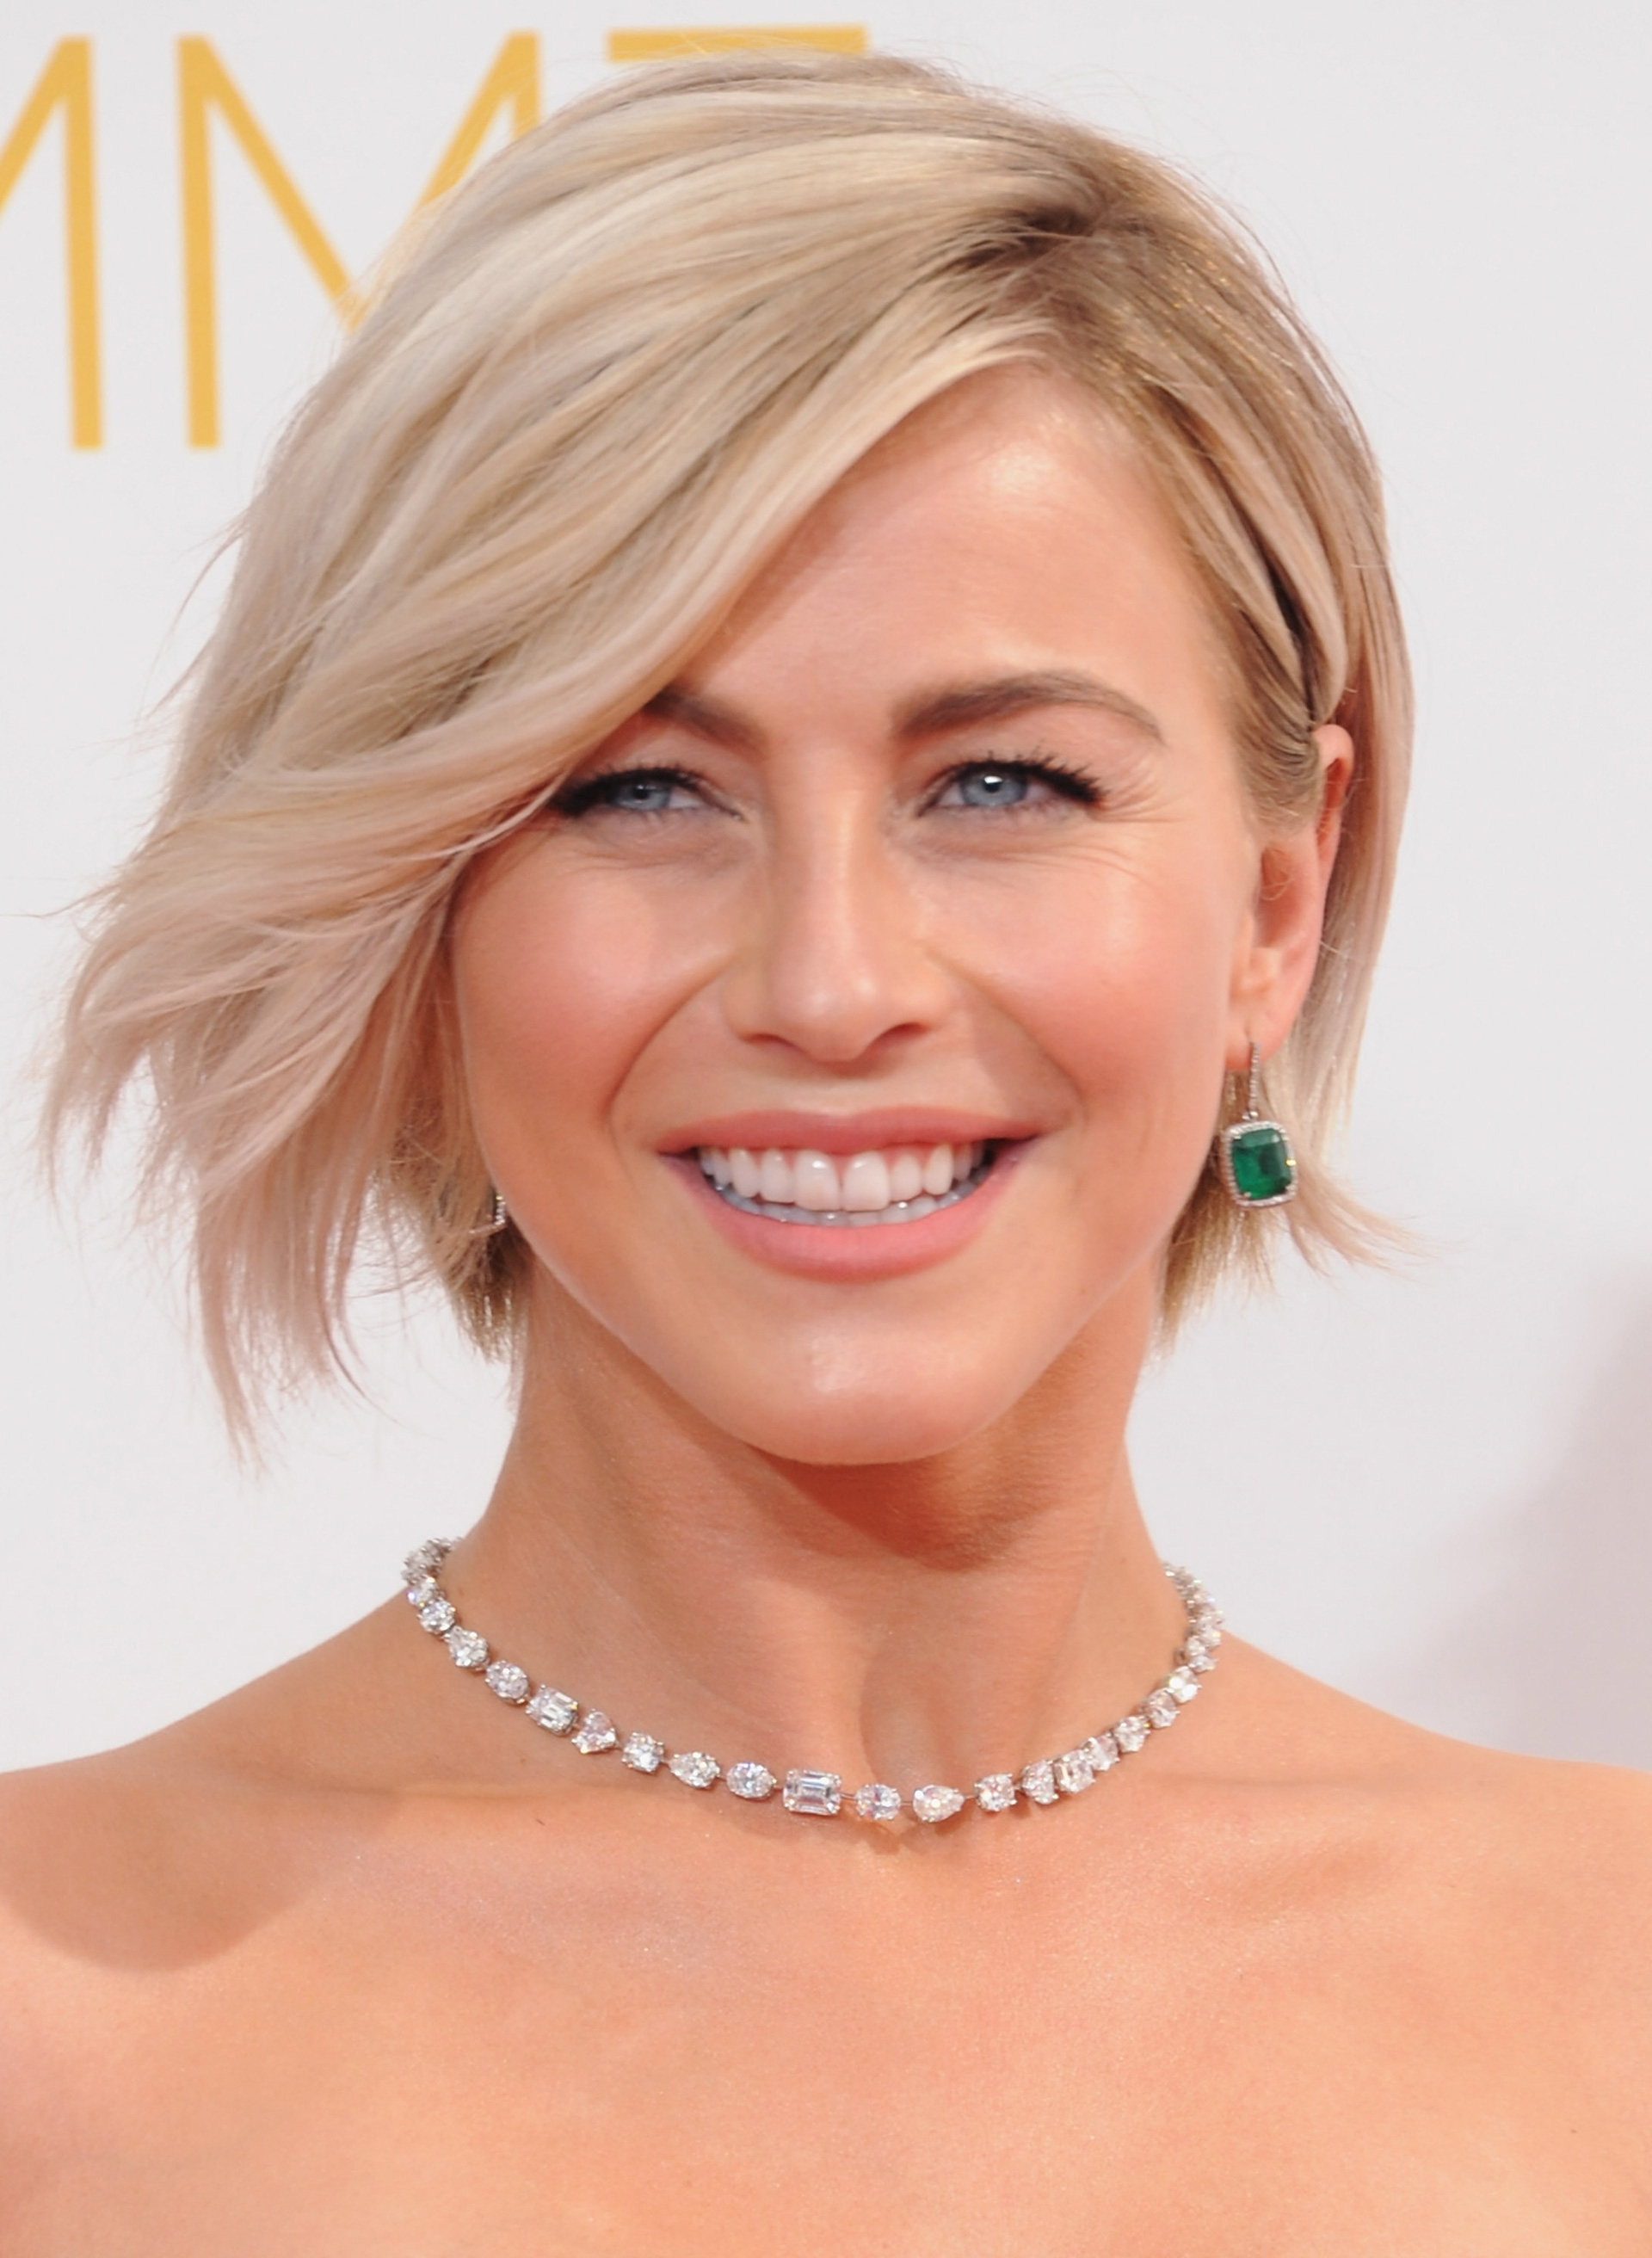 Julianne Hough Bob Hair Inspiration - Bob Hairstyles And Haircut Ideas intended for Most Popular Julianne Hough Pixie Hairstyles